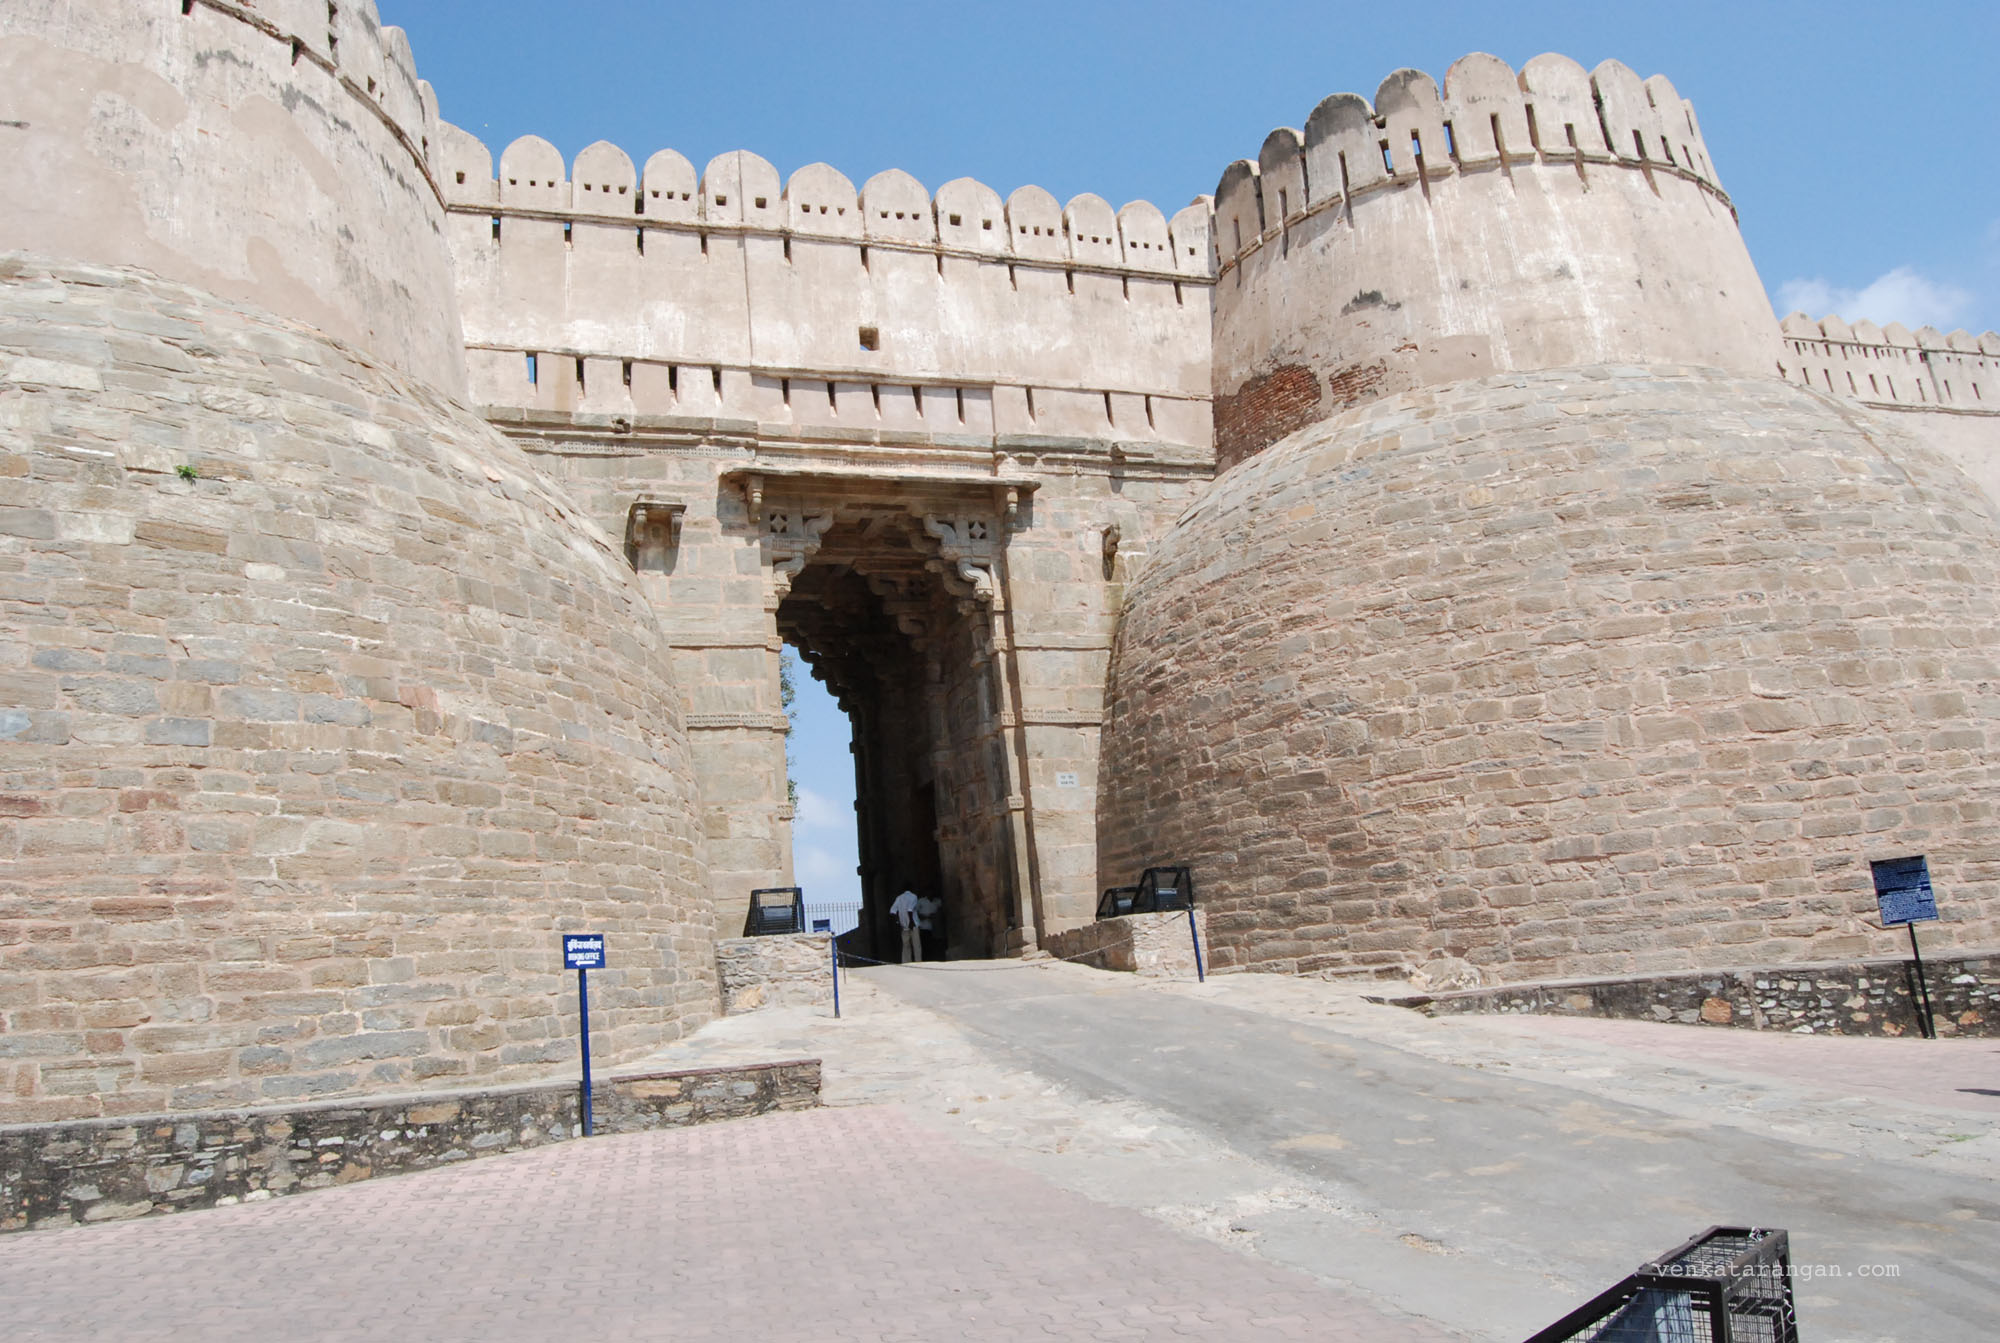 Gateway to Kumbhalgarh Fort